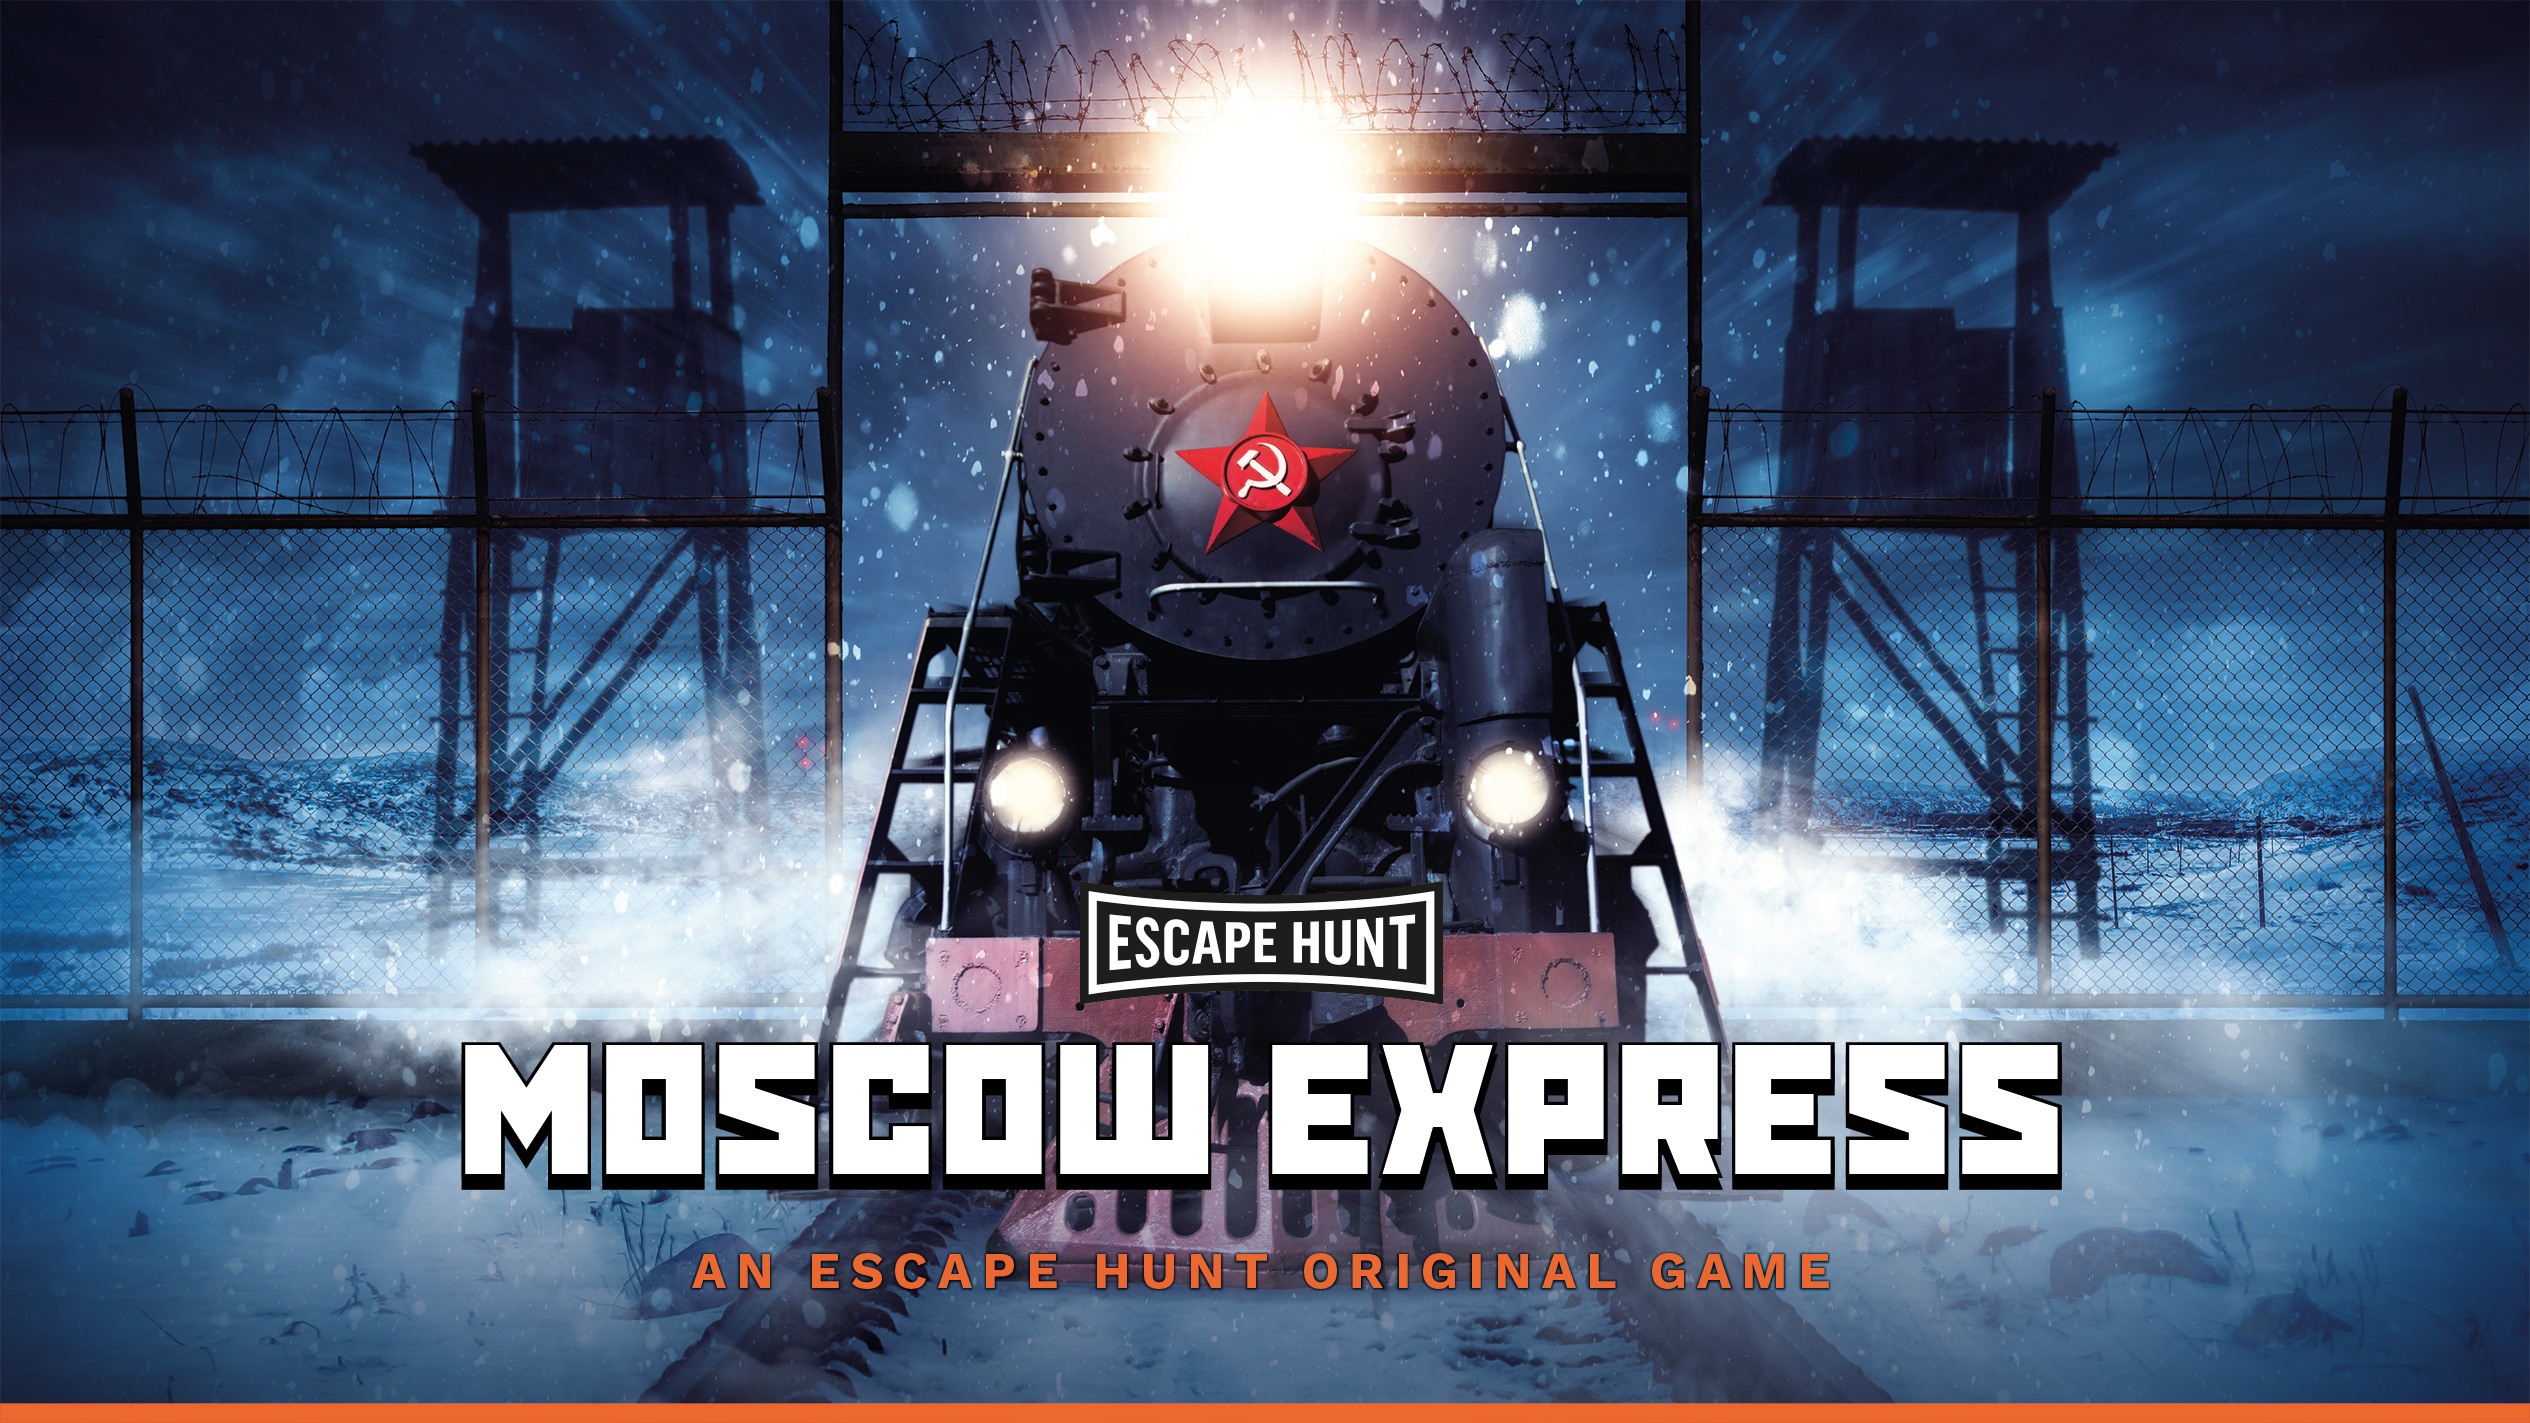 Escape Game Metz - Moscow Express